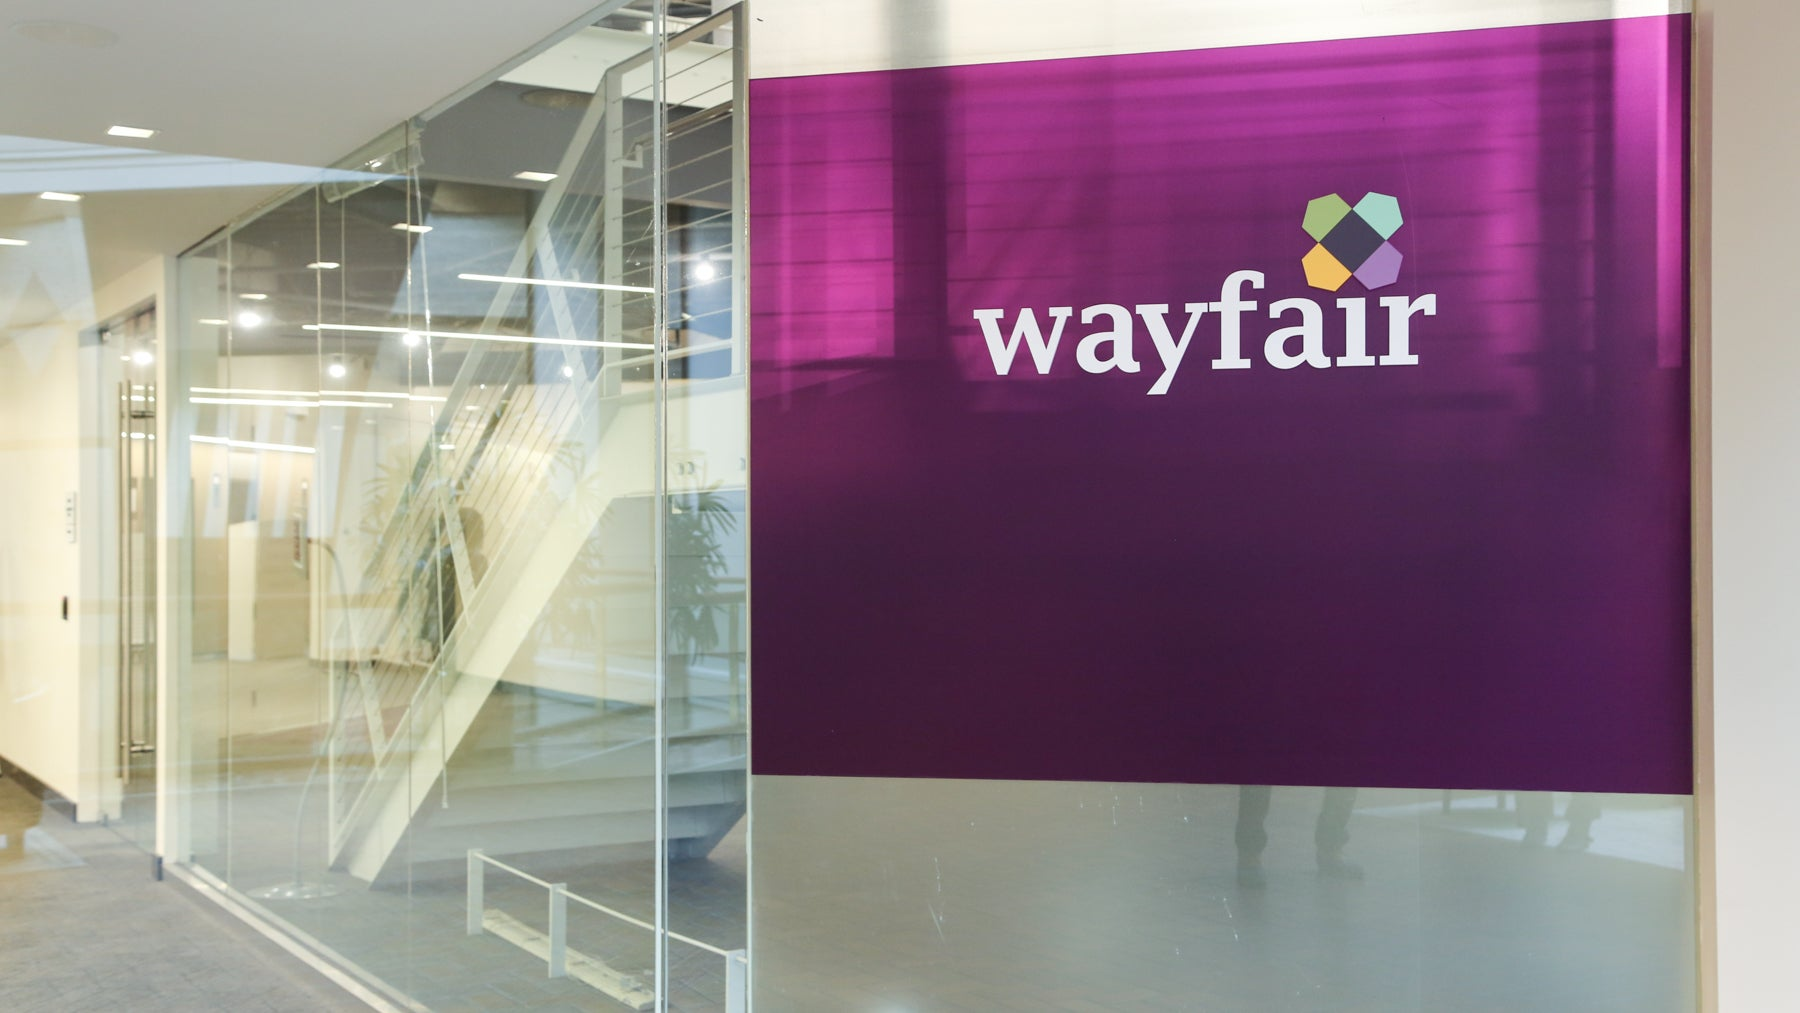 Wayfair is located in Copley Place.